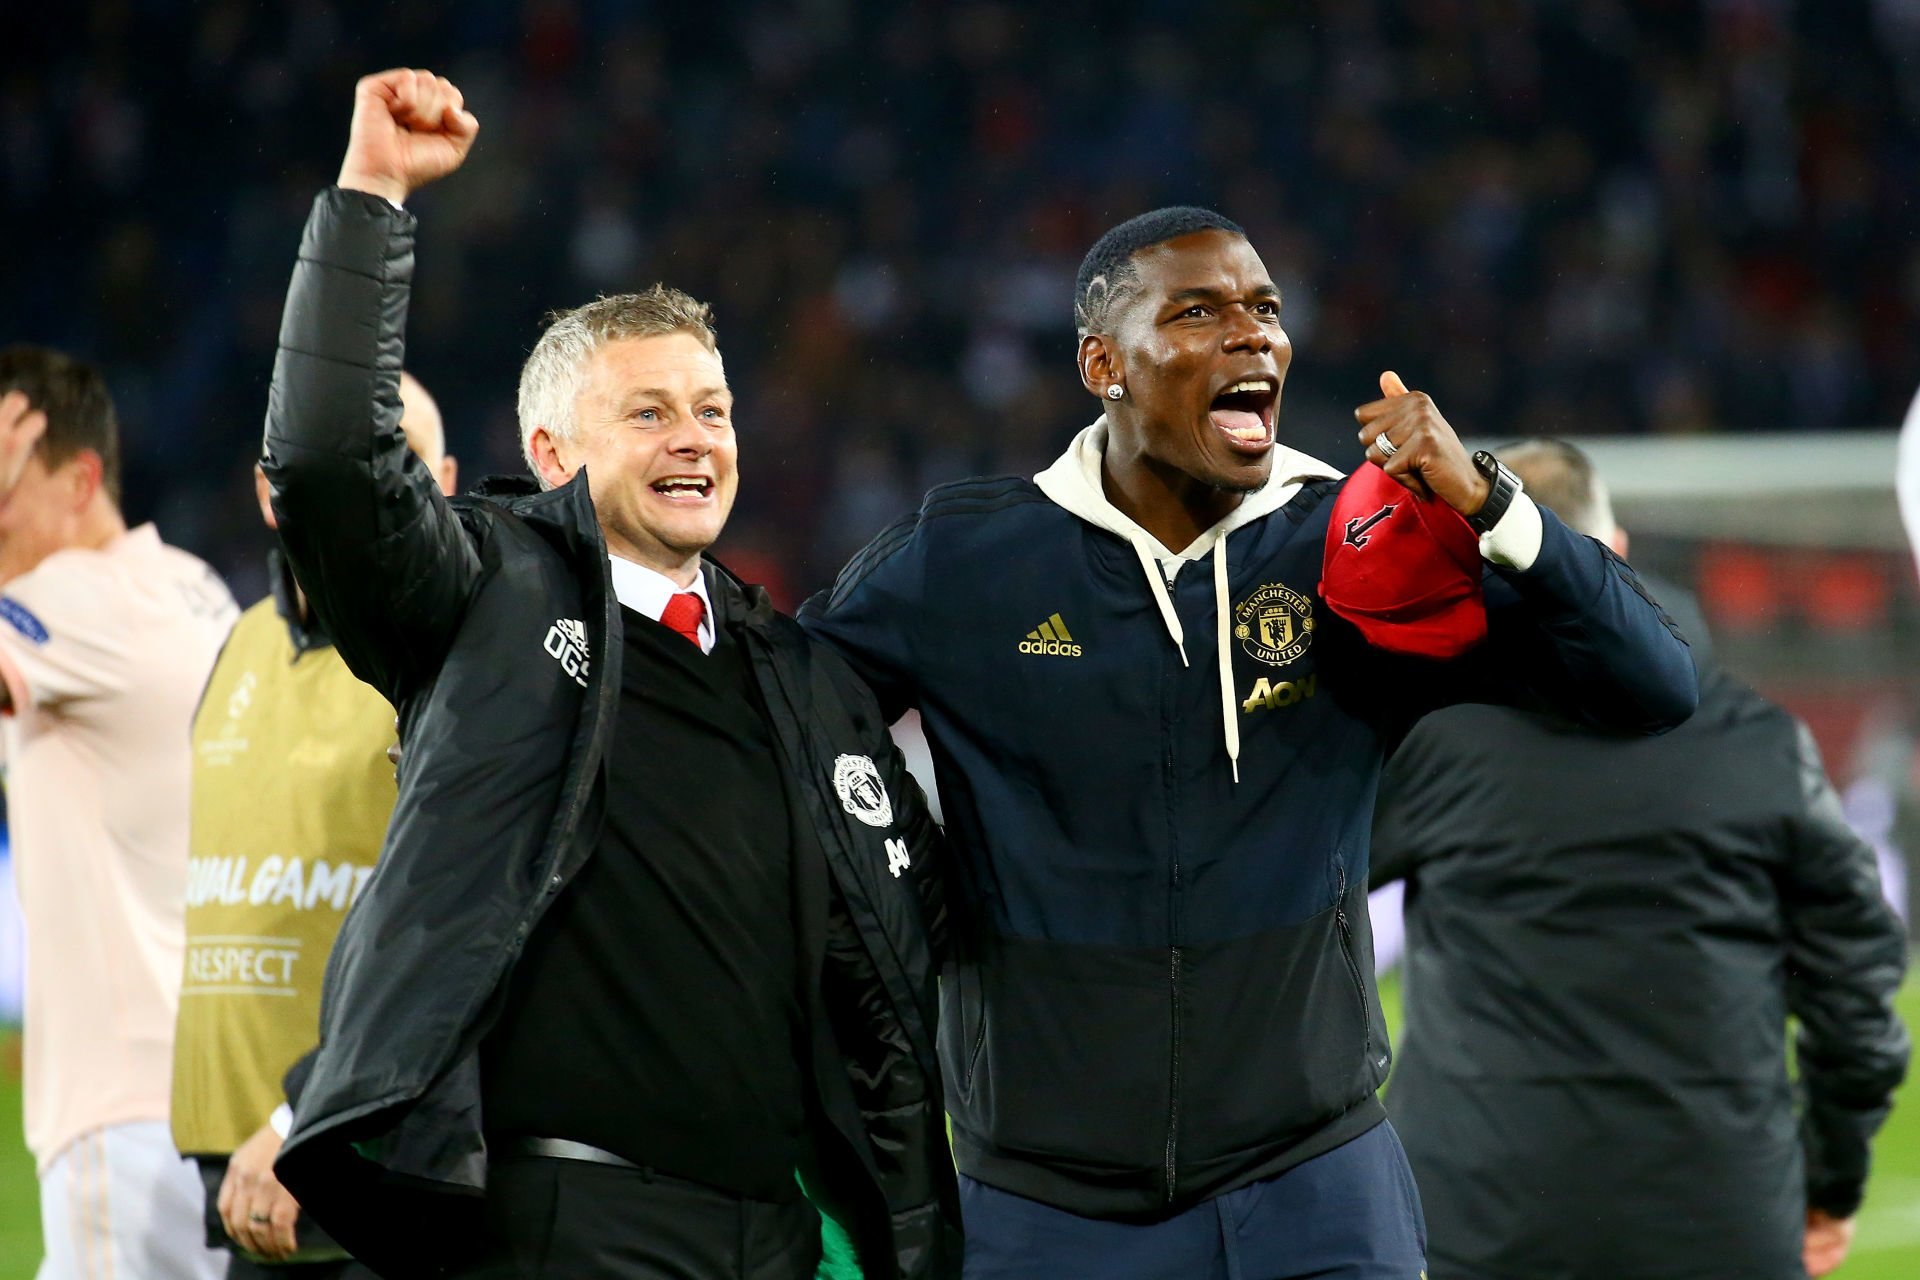 Ole Gunnar Solskjaer, coach of Manchester United and Paul Pogba of Manchester United during the UEFA Champions League Round of 16 Second Leg match between Paris Saint Germain and Manchester United at Parc des Princes on March 6, 2019 in Paris, France. (Photo by Pierre Costabadie/Icon Sport) PILKA NOZNA SEZON 2018/2019 LIGA MISTRZOW FOT. ICON SPORT/NEWSPIX.PL POLAND ONLY! --- Newspix.pl *** Local Caption *** www.newspix.pl mail us: info@newspix.pl call us: 0048 022 23 22 222 --- Polish Picture Agency by Ringier Axel Springer Poland